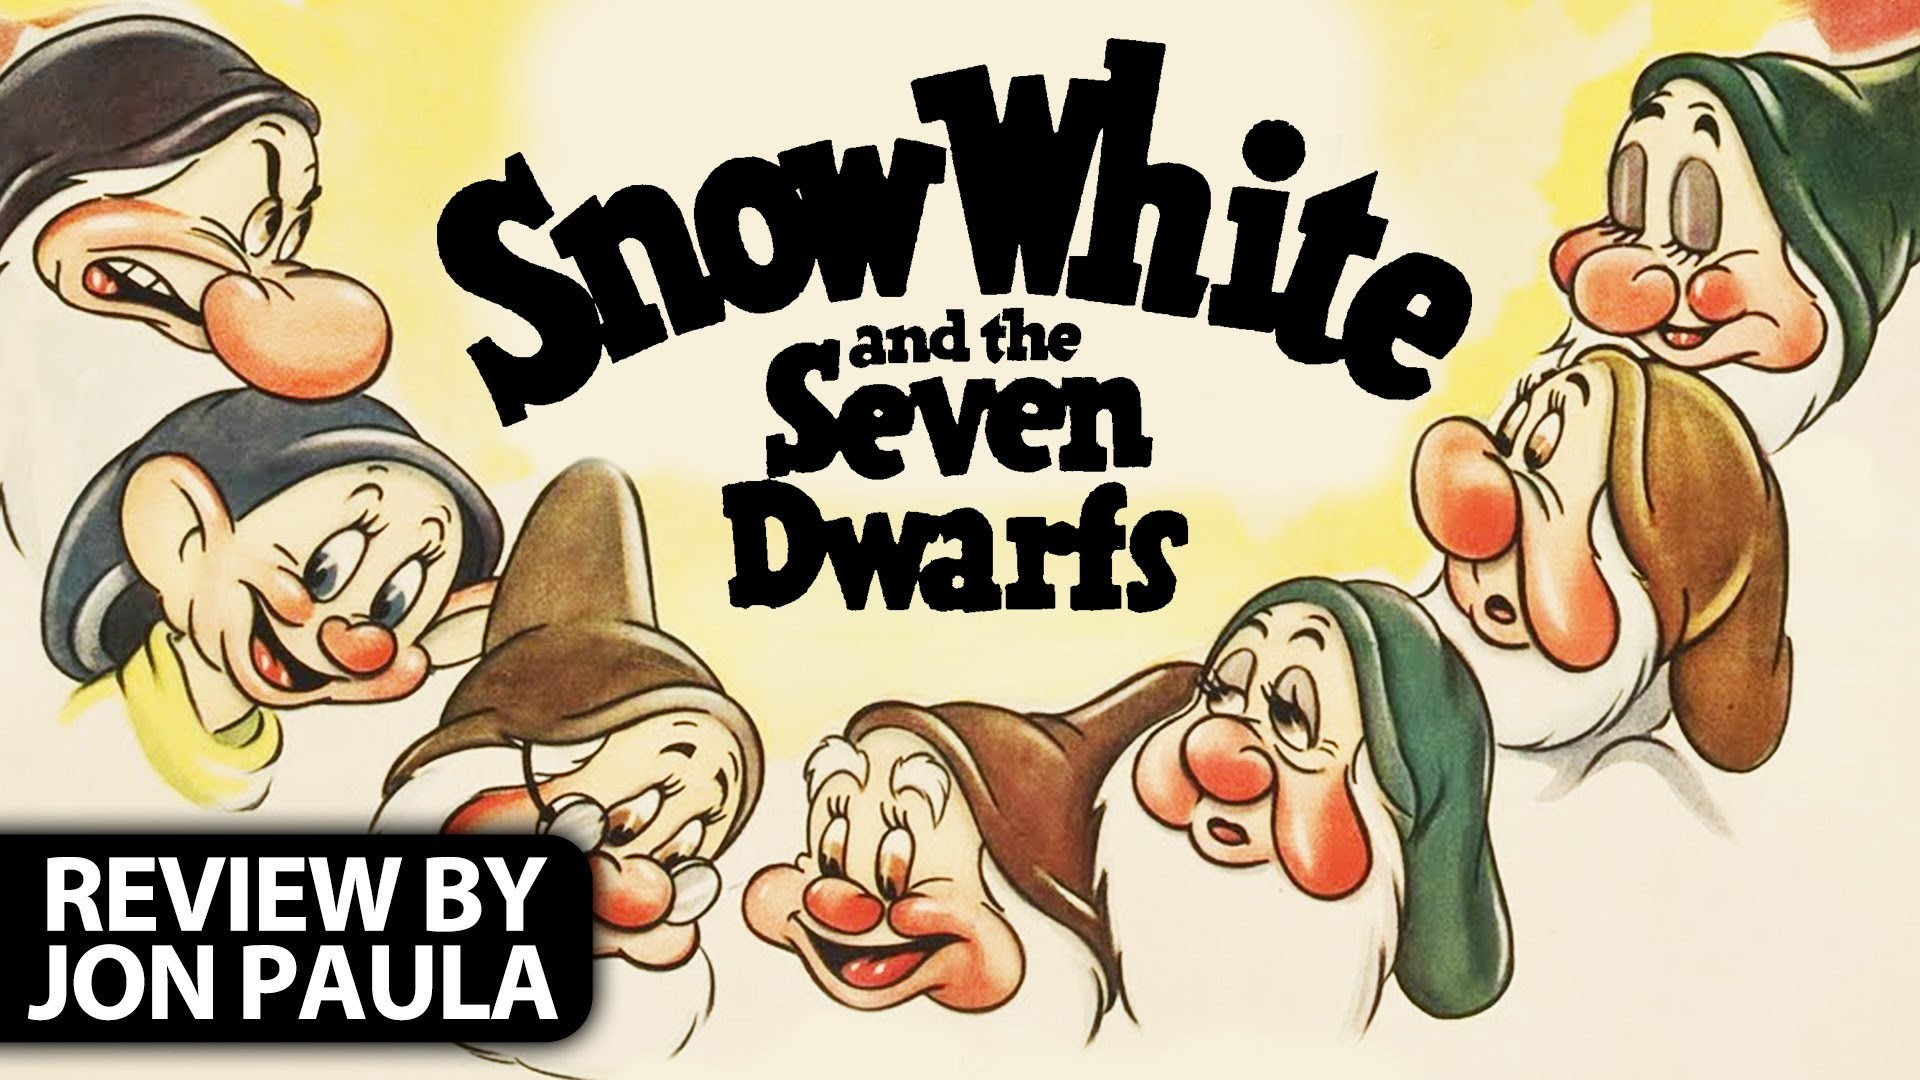 Supreme Wallpaper Girl Cartoon Snow White And The Seven Dwarfs Wallpaper 73 Images